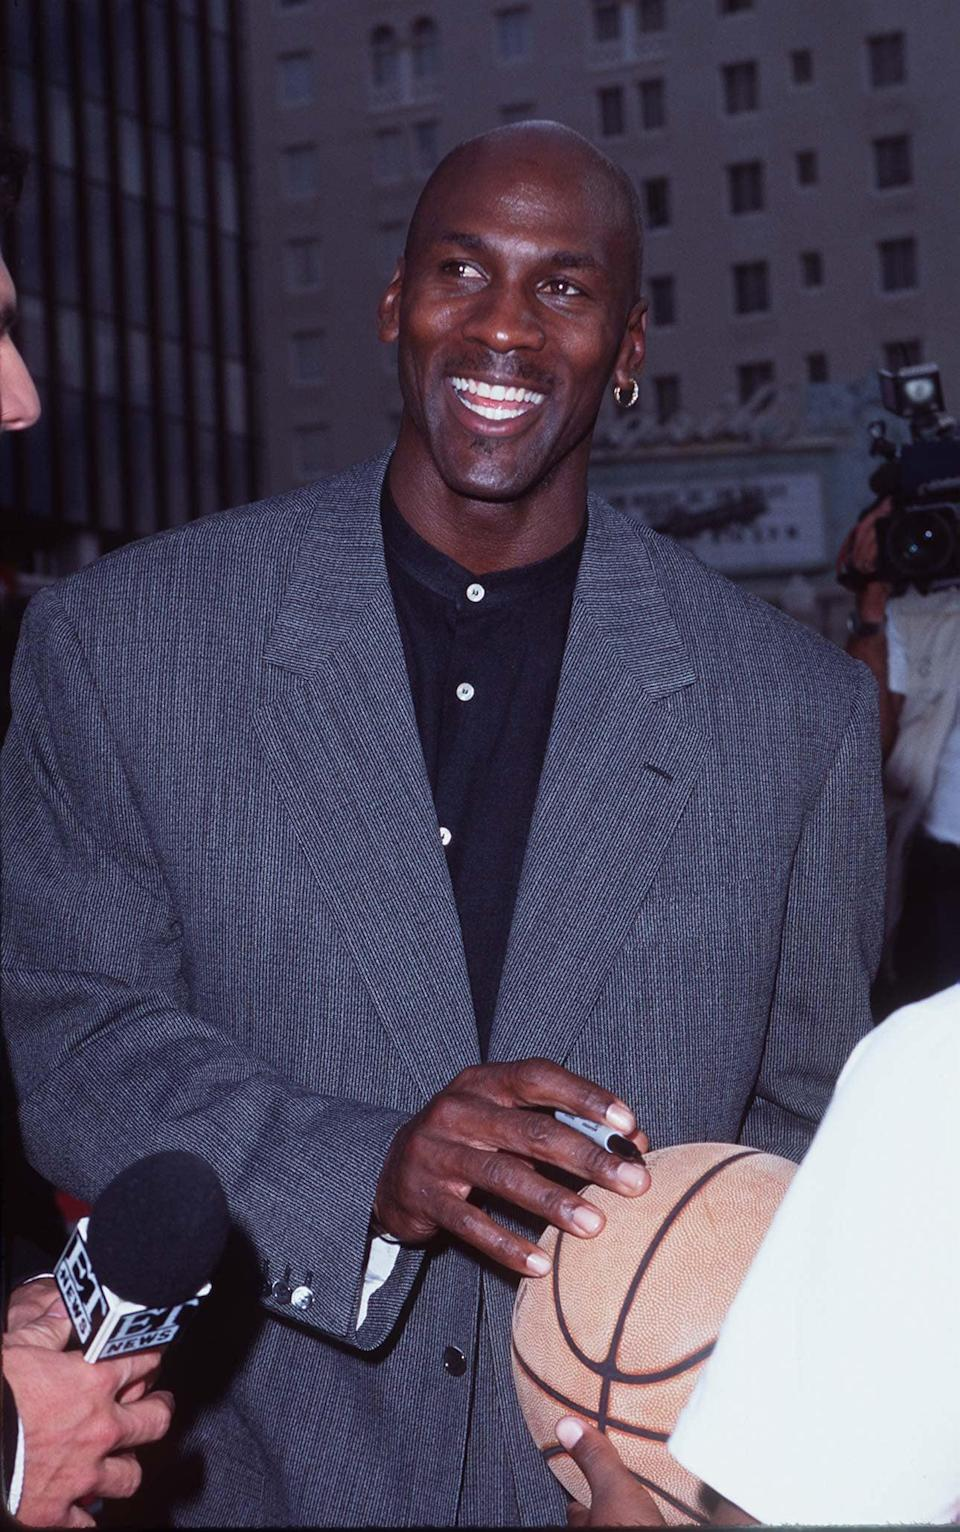 <p>Michael wore a grey blazer with a mandarin-collar button-up shirt and his signature single earring to the premiere of <strong>Space Jam</strong> in Los Angeles in 1996.</p>